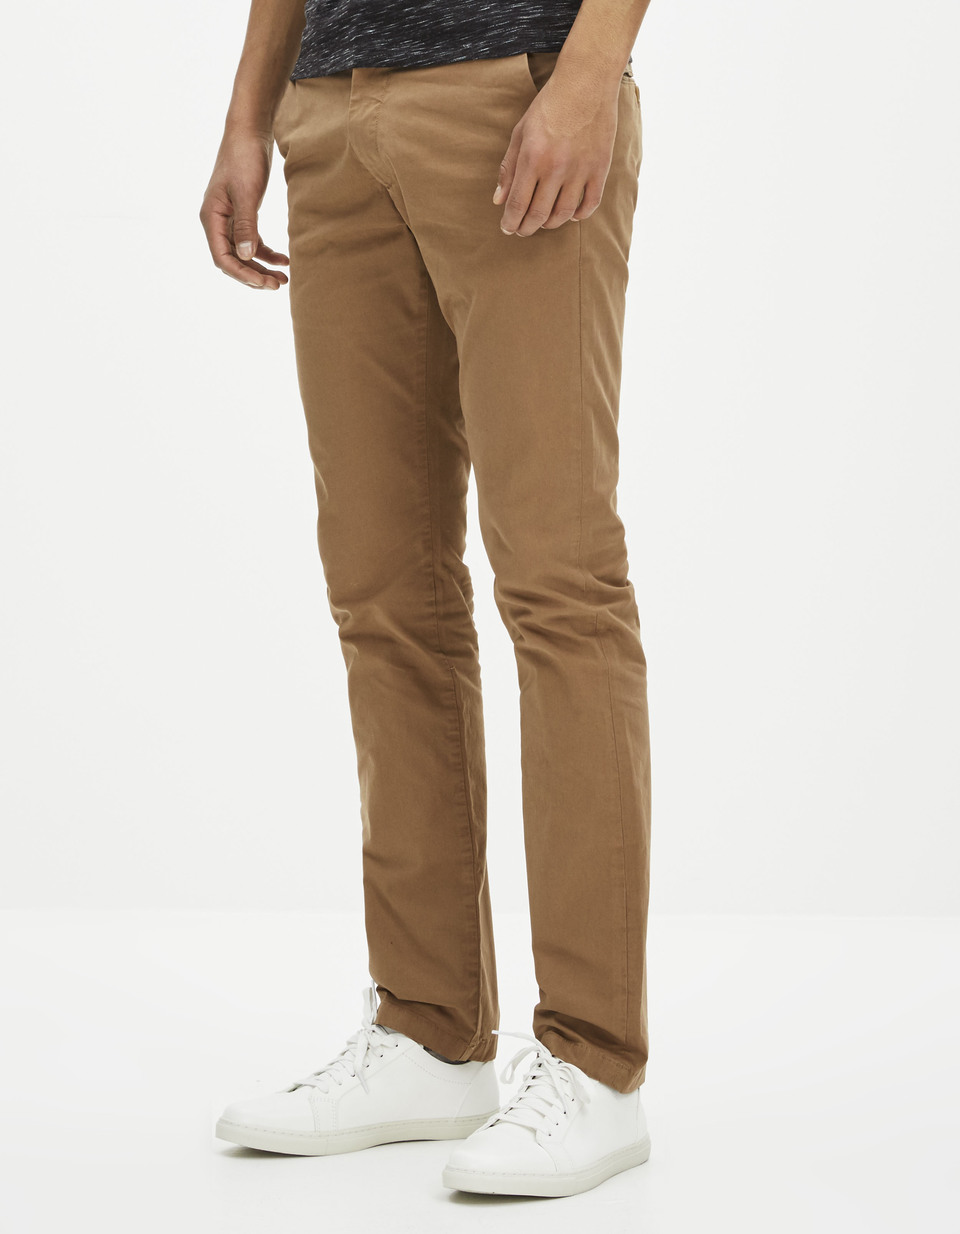 Pantalon slack coupe slim - GOPRIMO - Celio France